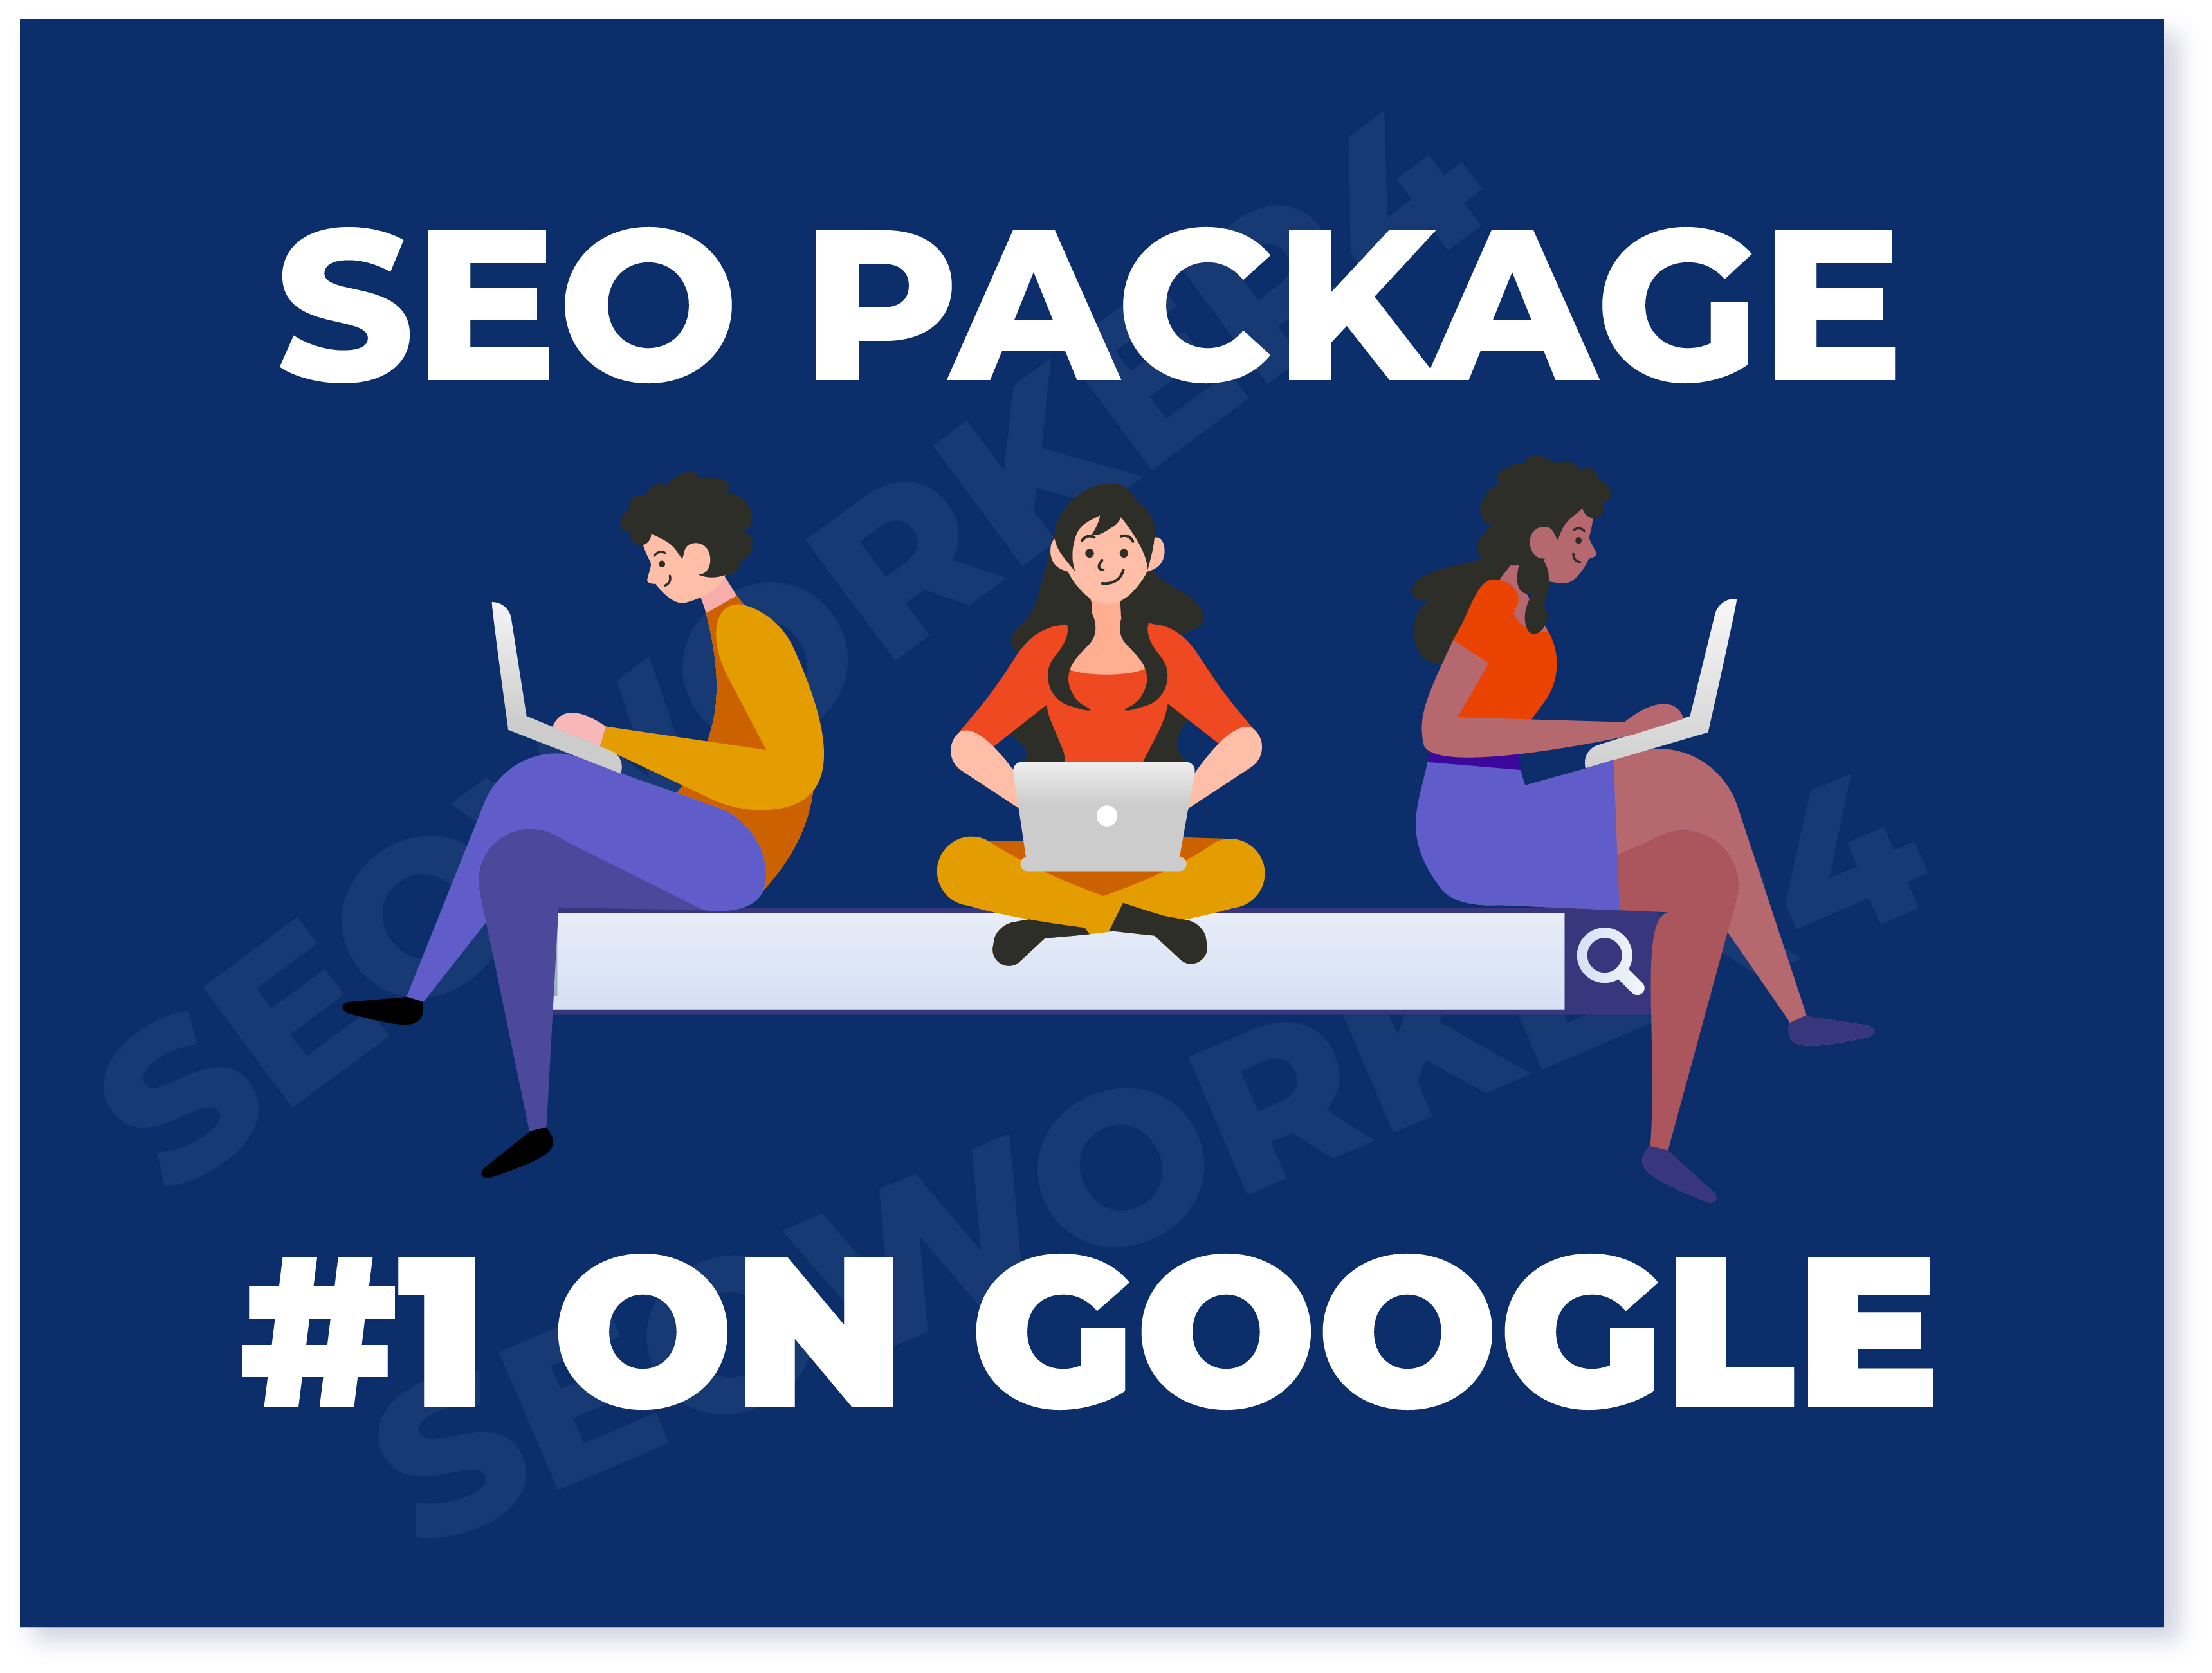 I Will provide seo backlink packages 1 on GOOGLE